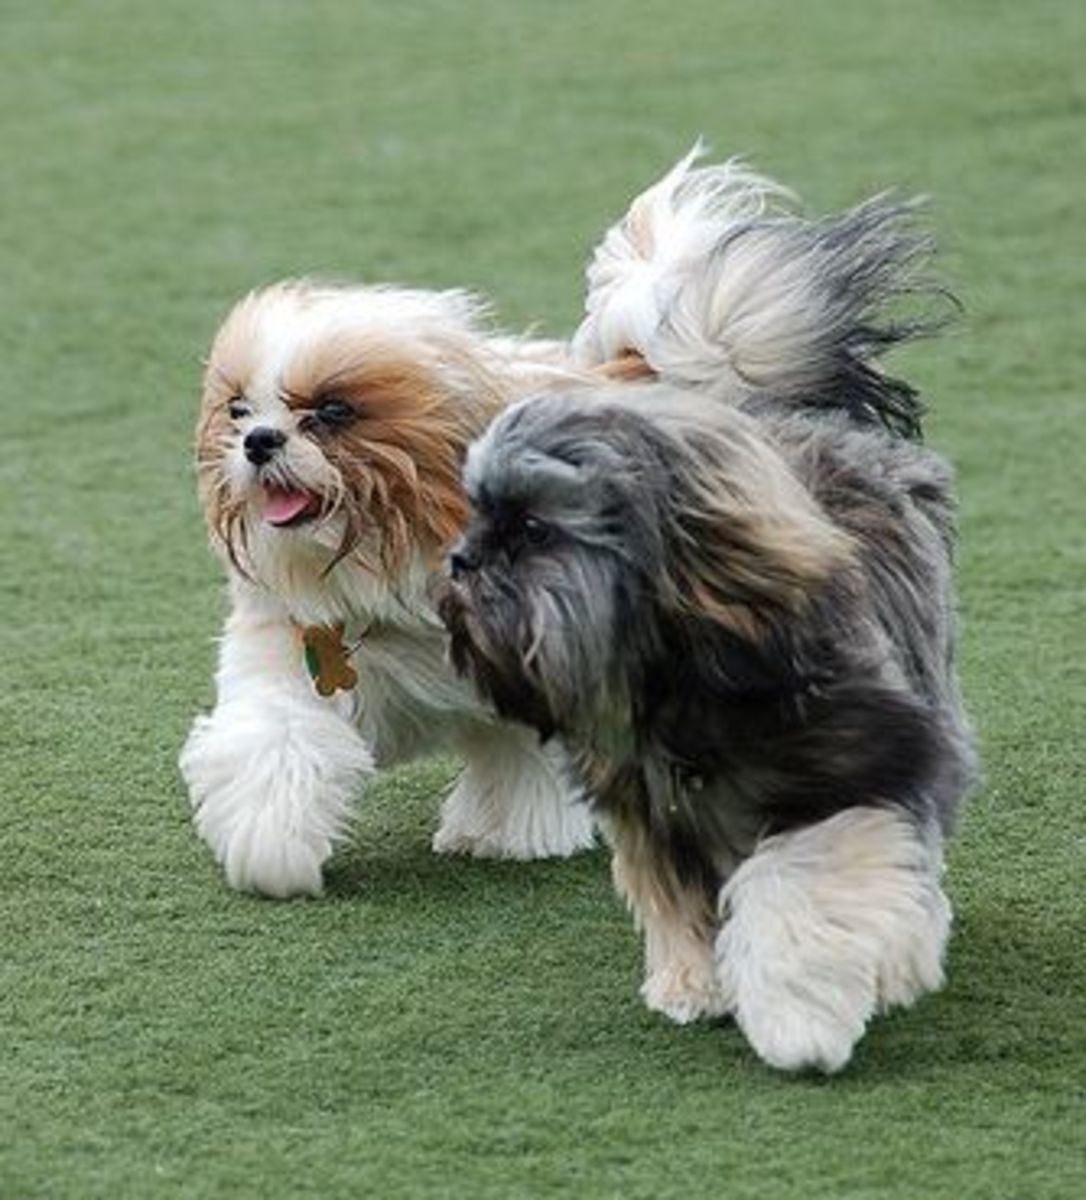 5 Small Dog Breeds That Don't Shed Much